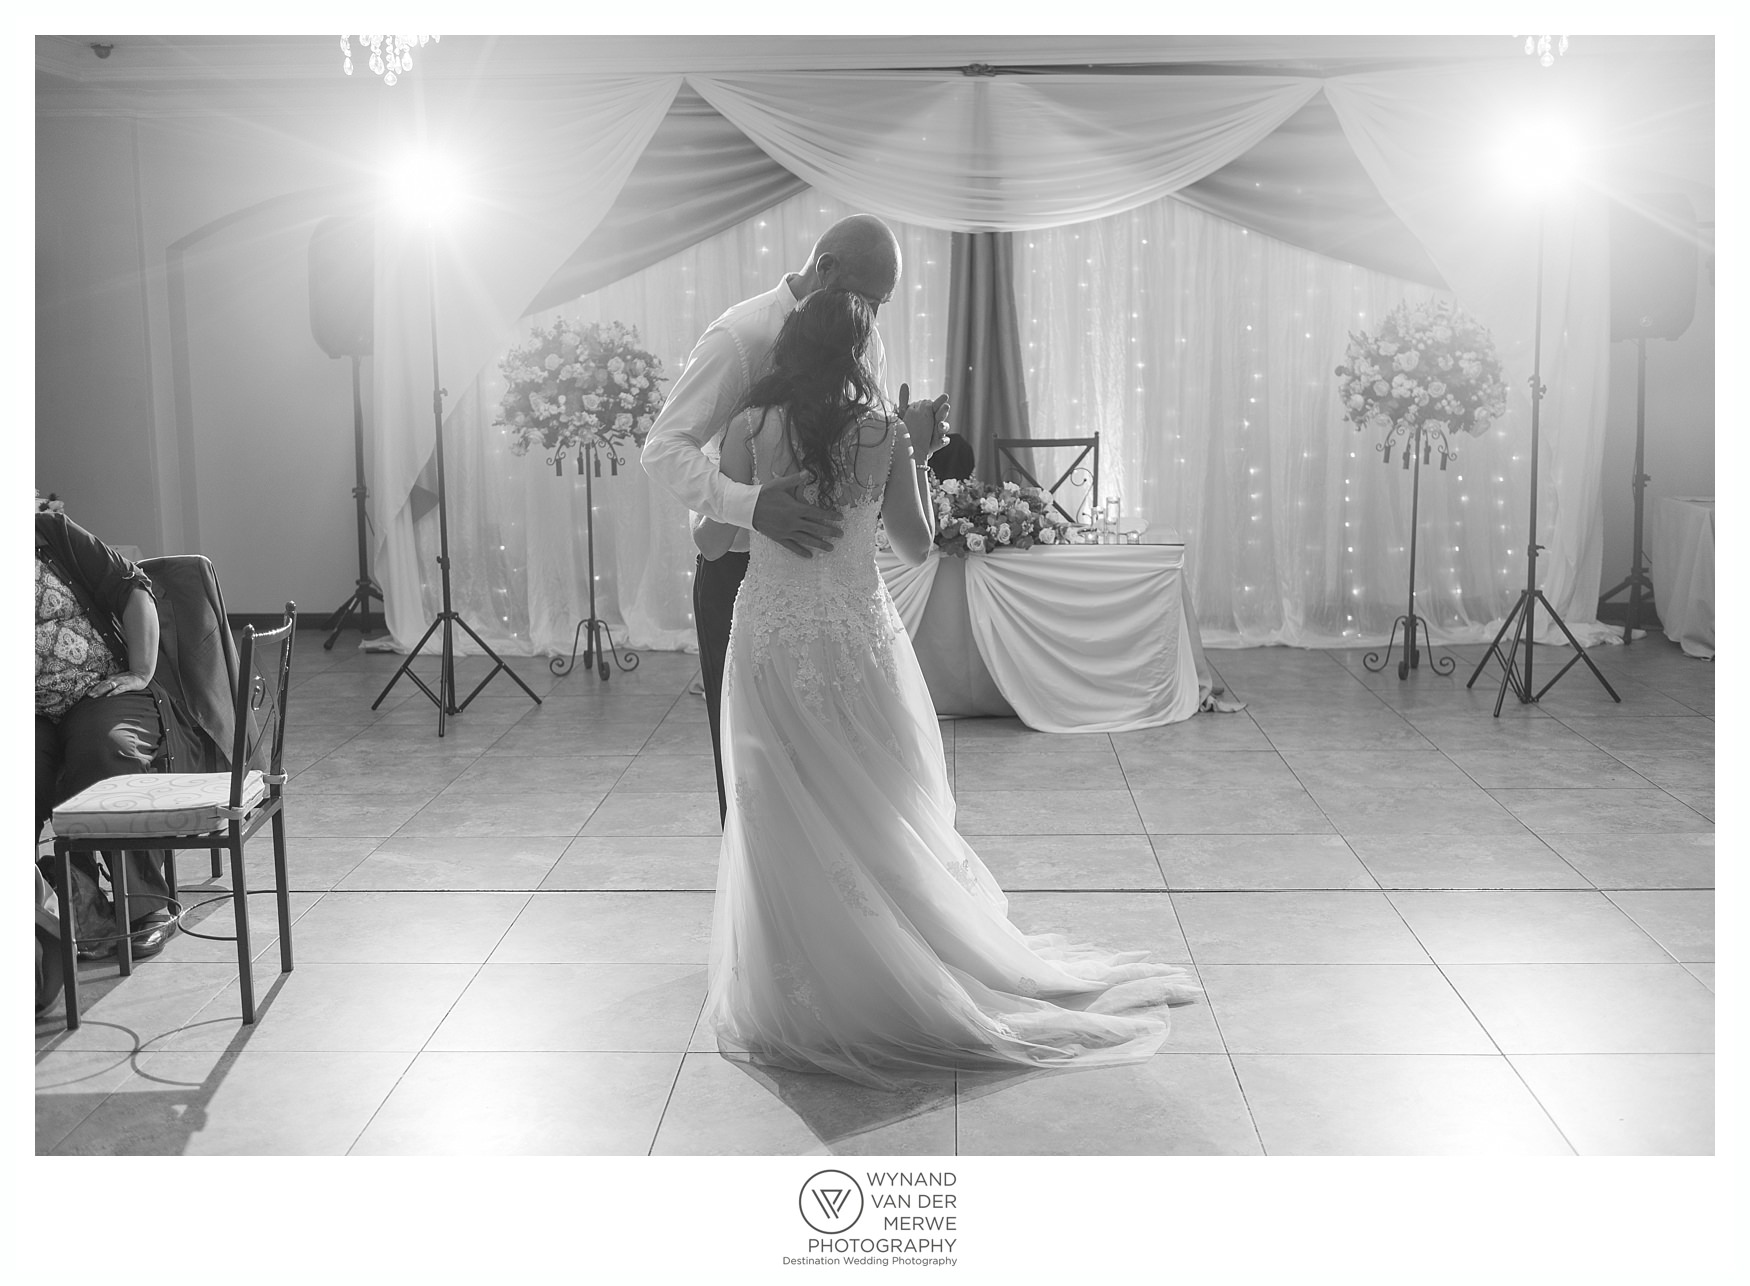 WynandvanderMerwe chris marike wedding moonandsixpense gauteng564.jpg